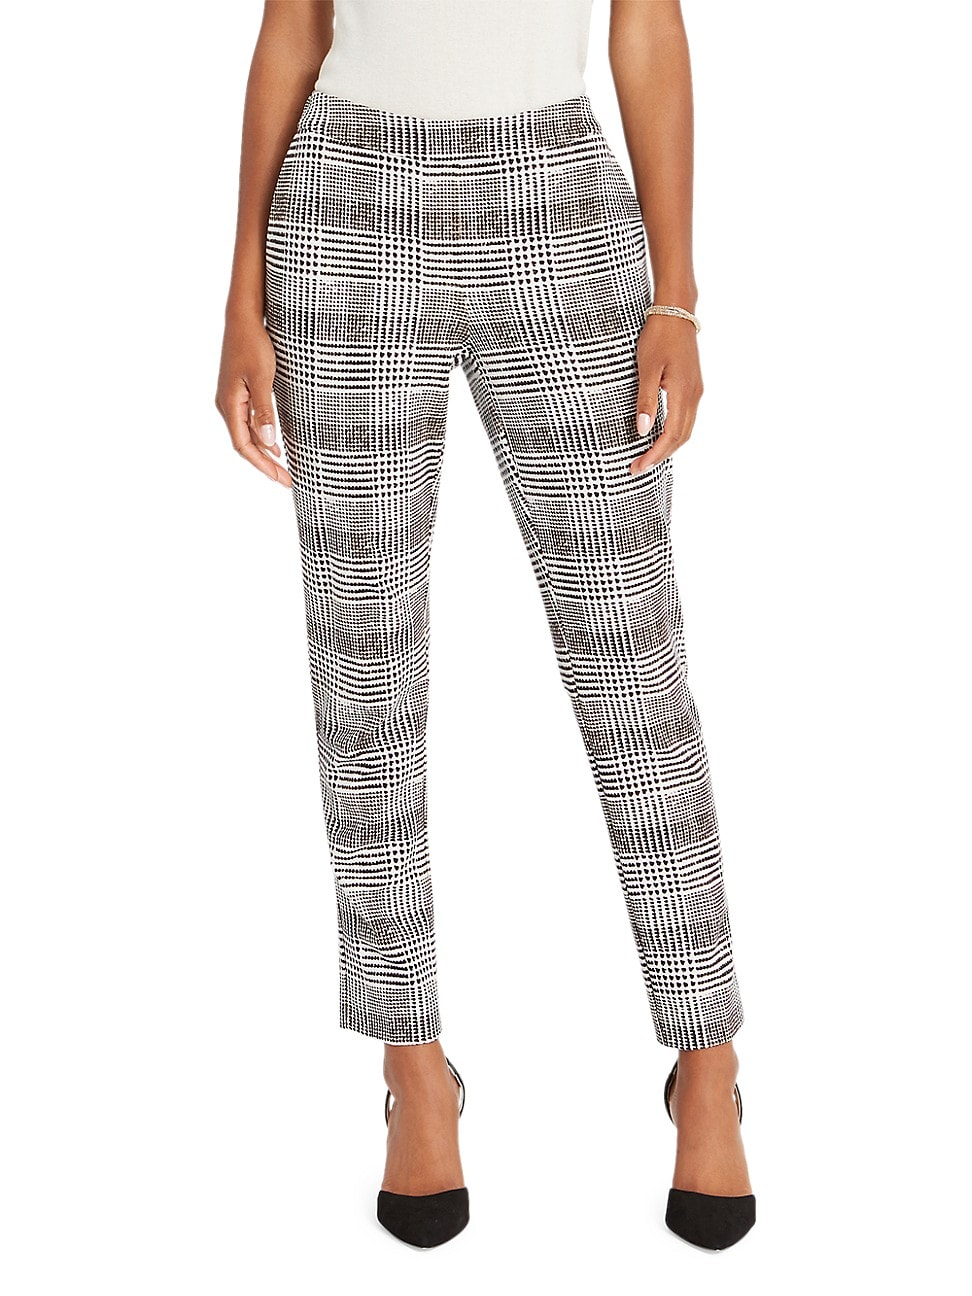 Nic + Zoe WOMEN'S MODERN PLAID PANTS